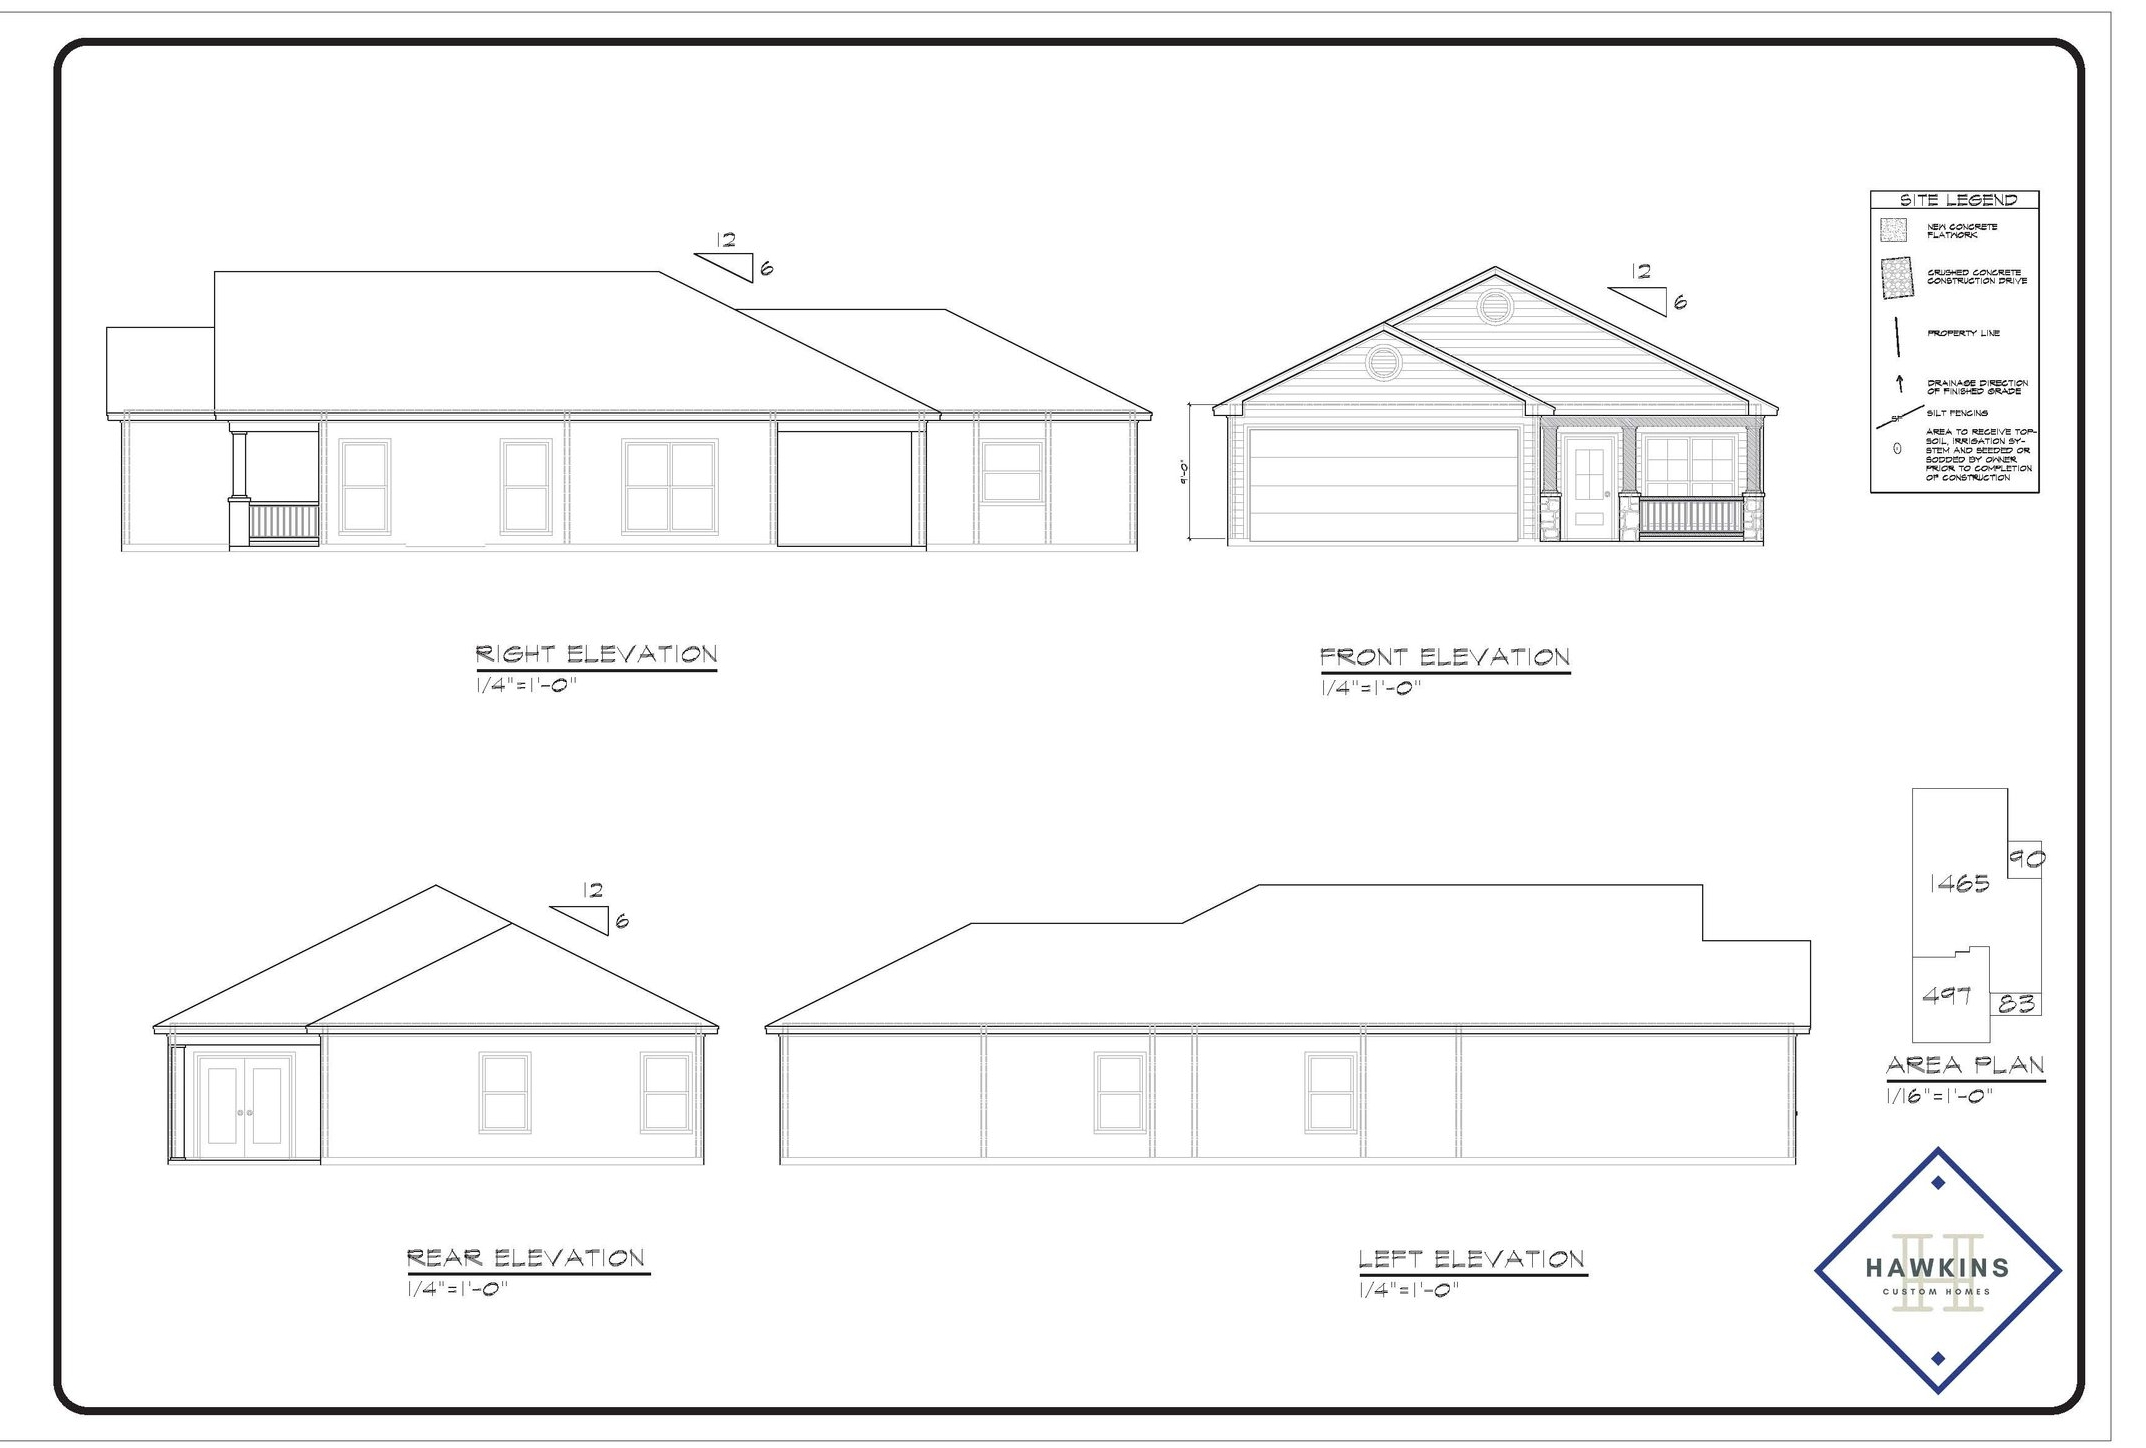 House Plan 1_Page_1.jpg